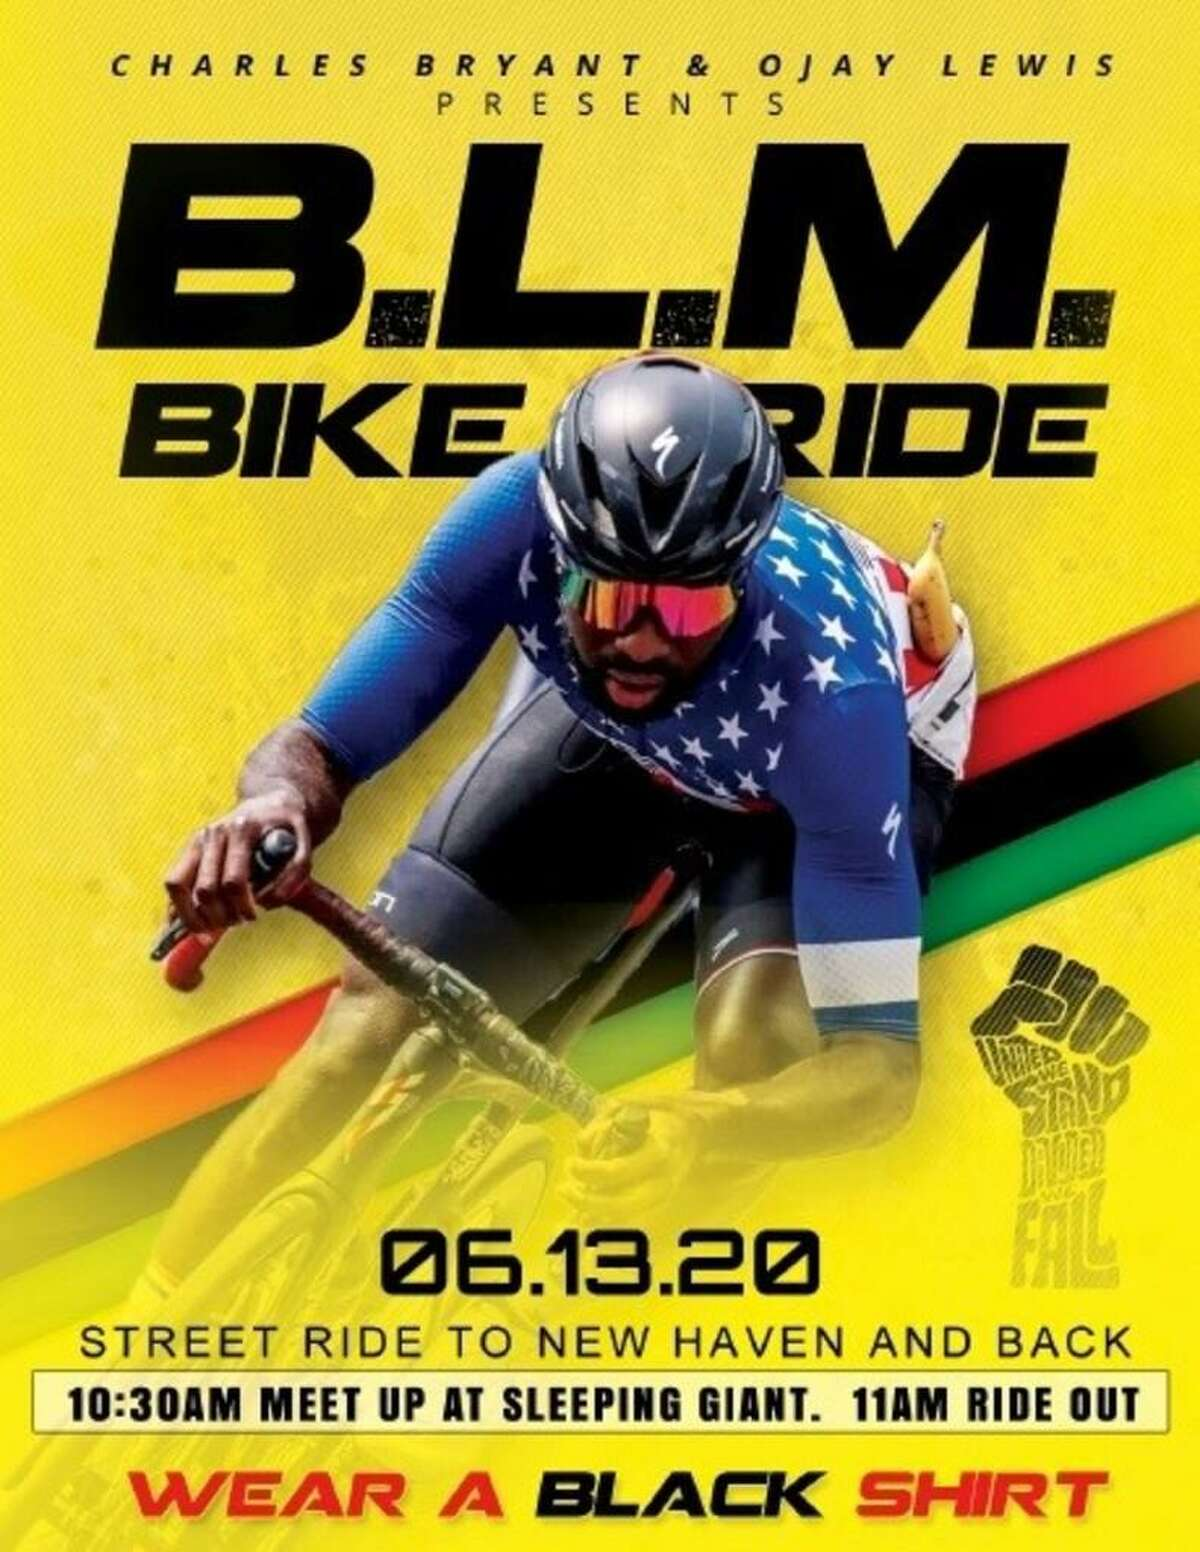 A ride in support of Black Lives Matter and promoting health in the black community will start at 11 a.m. Saturday at Sleeping Giant State Park, organizers said.